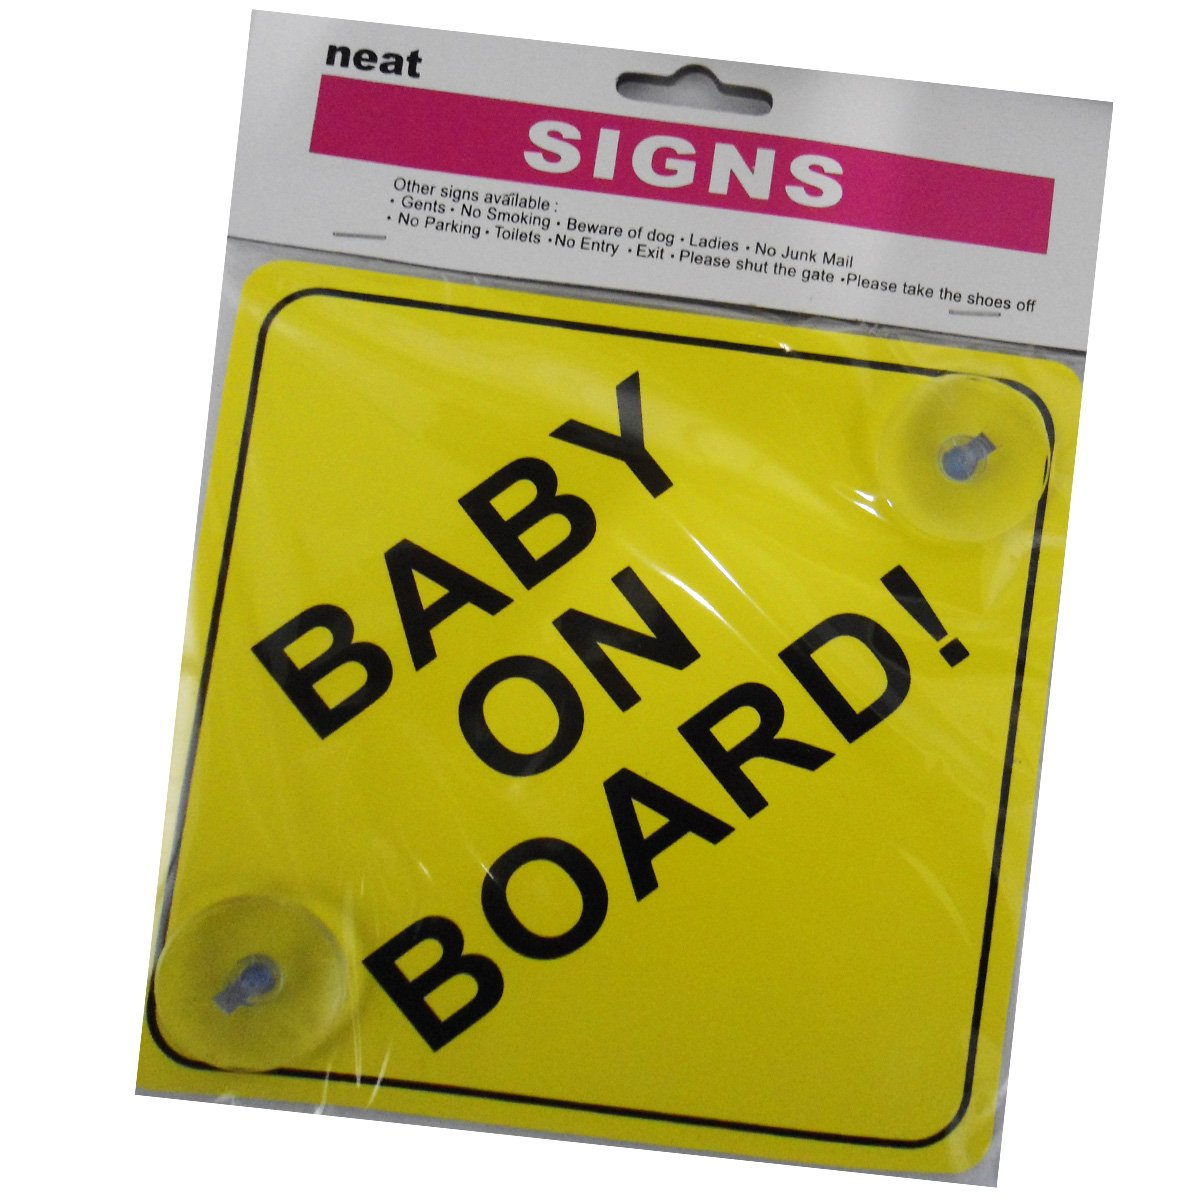 Baby on Board Child Safety includes 2 suction cup for your Car Vechicle Signs Grids London